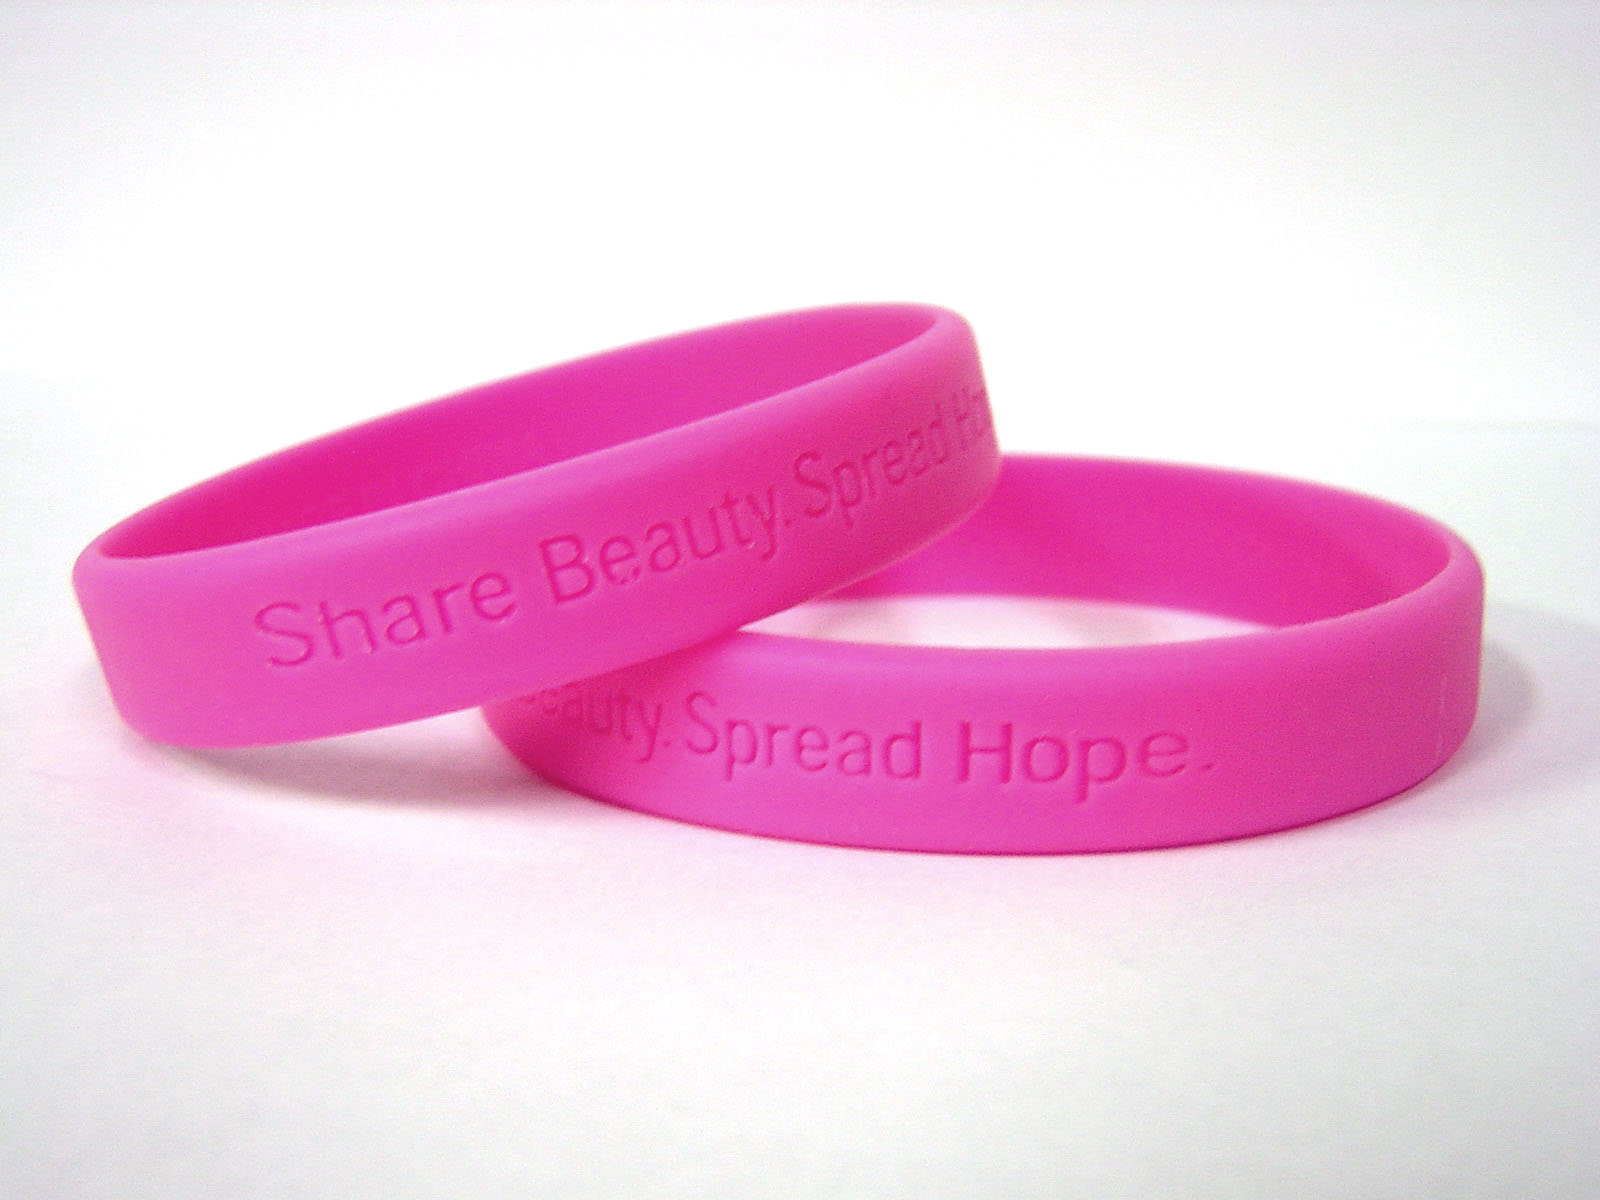 breast-cancer-bands-2-1514825.jpg